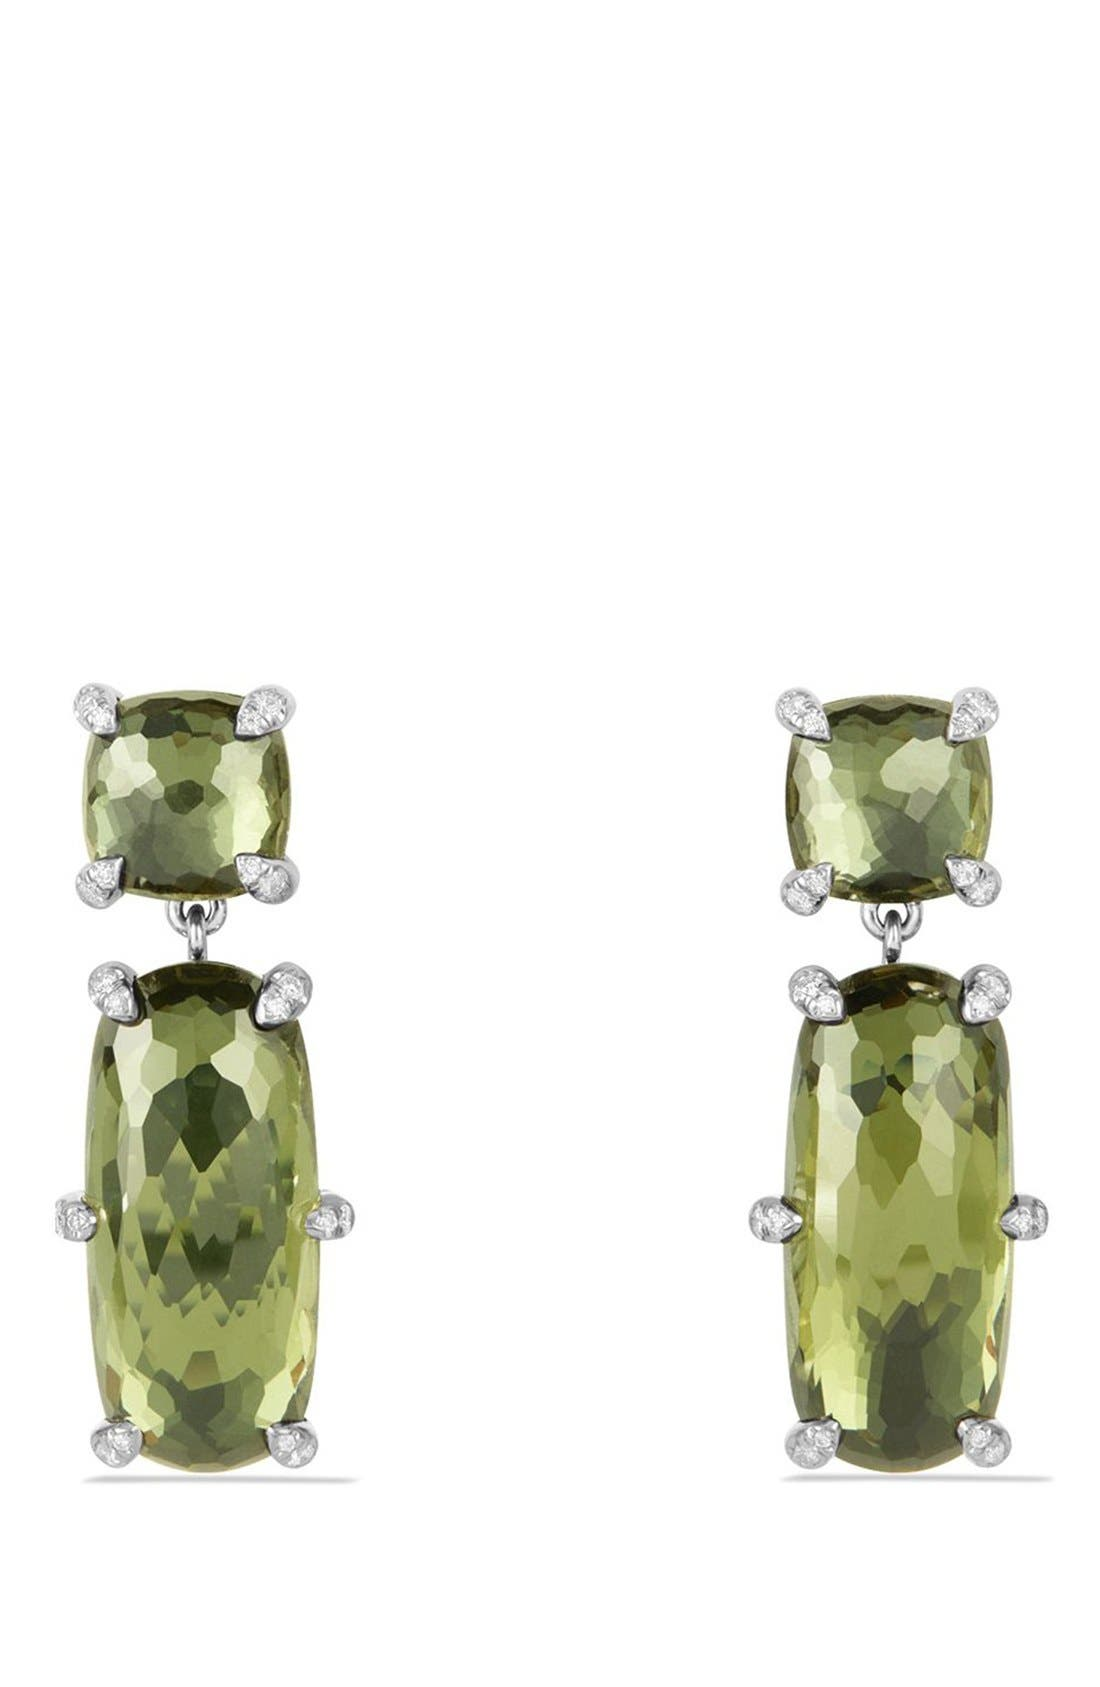 'Châtelaine' Double Drop Earrings,                         Main,                         color, Silver/ Citrine/ Hematine